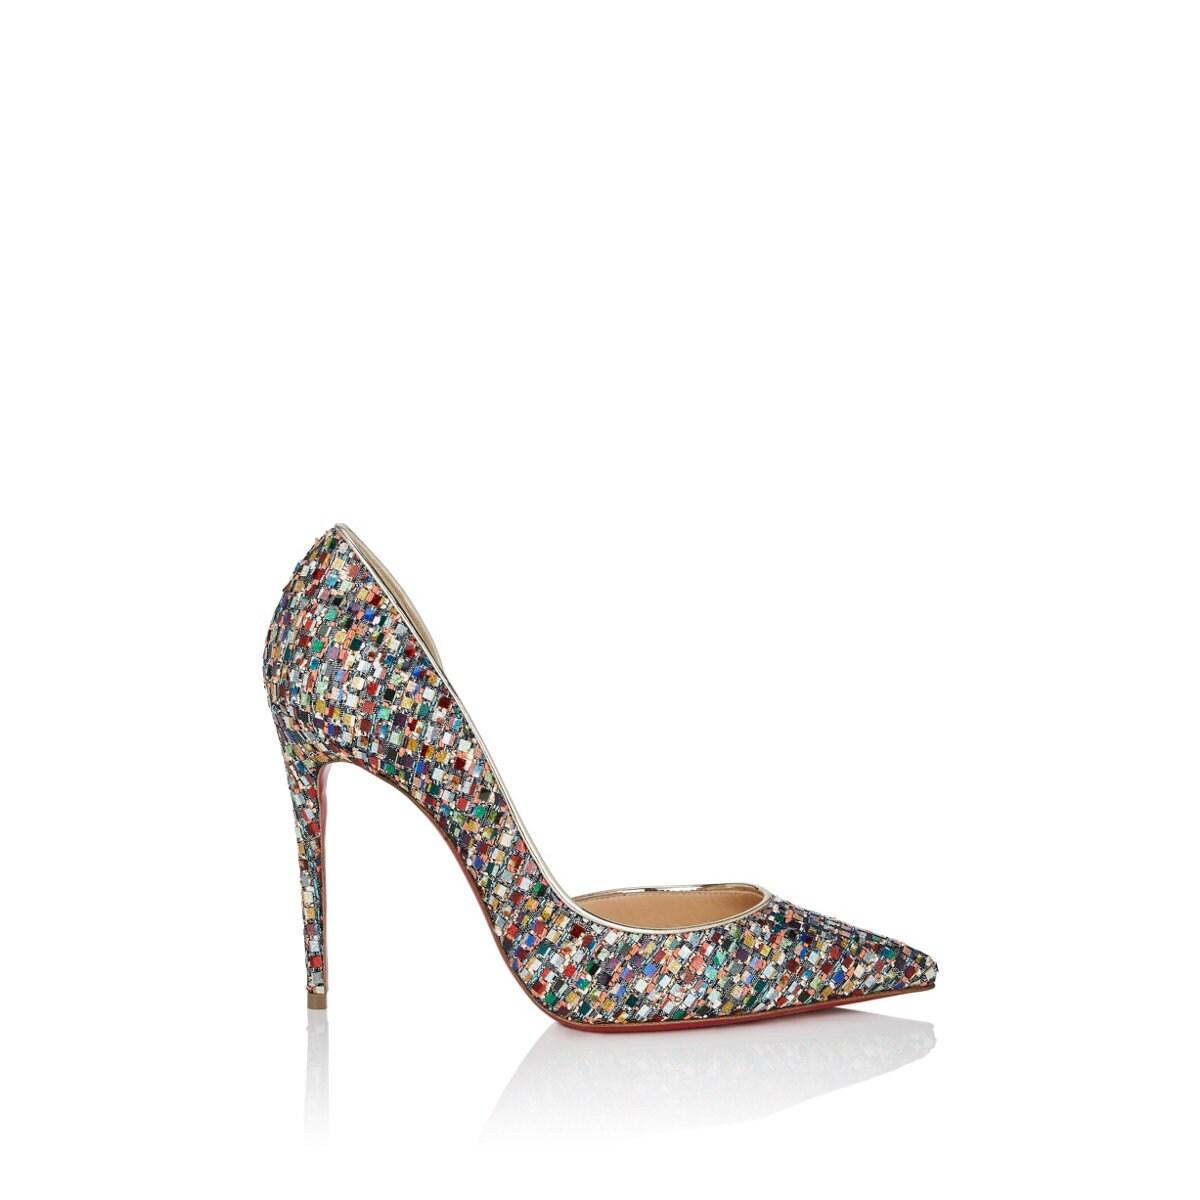 75d23254d3 Christian Louboutin Iriza Holographic Tweed D'orsay Pumps Size 7.5 ...